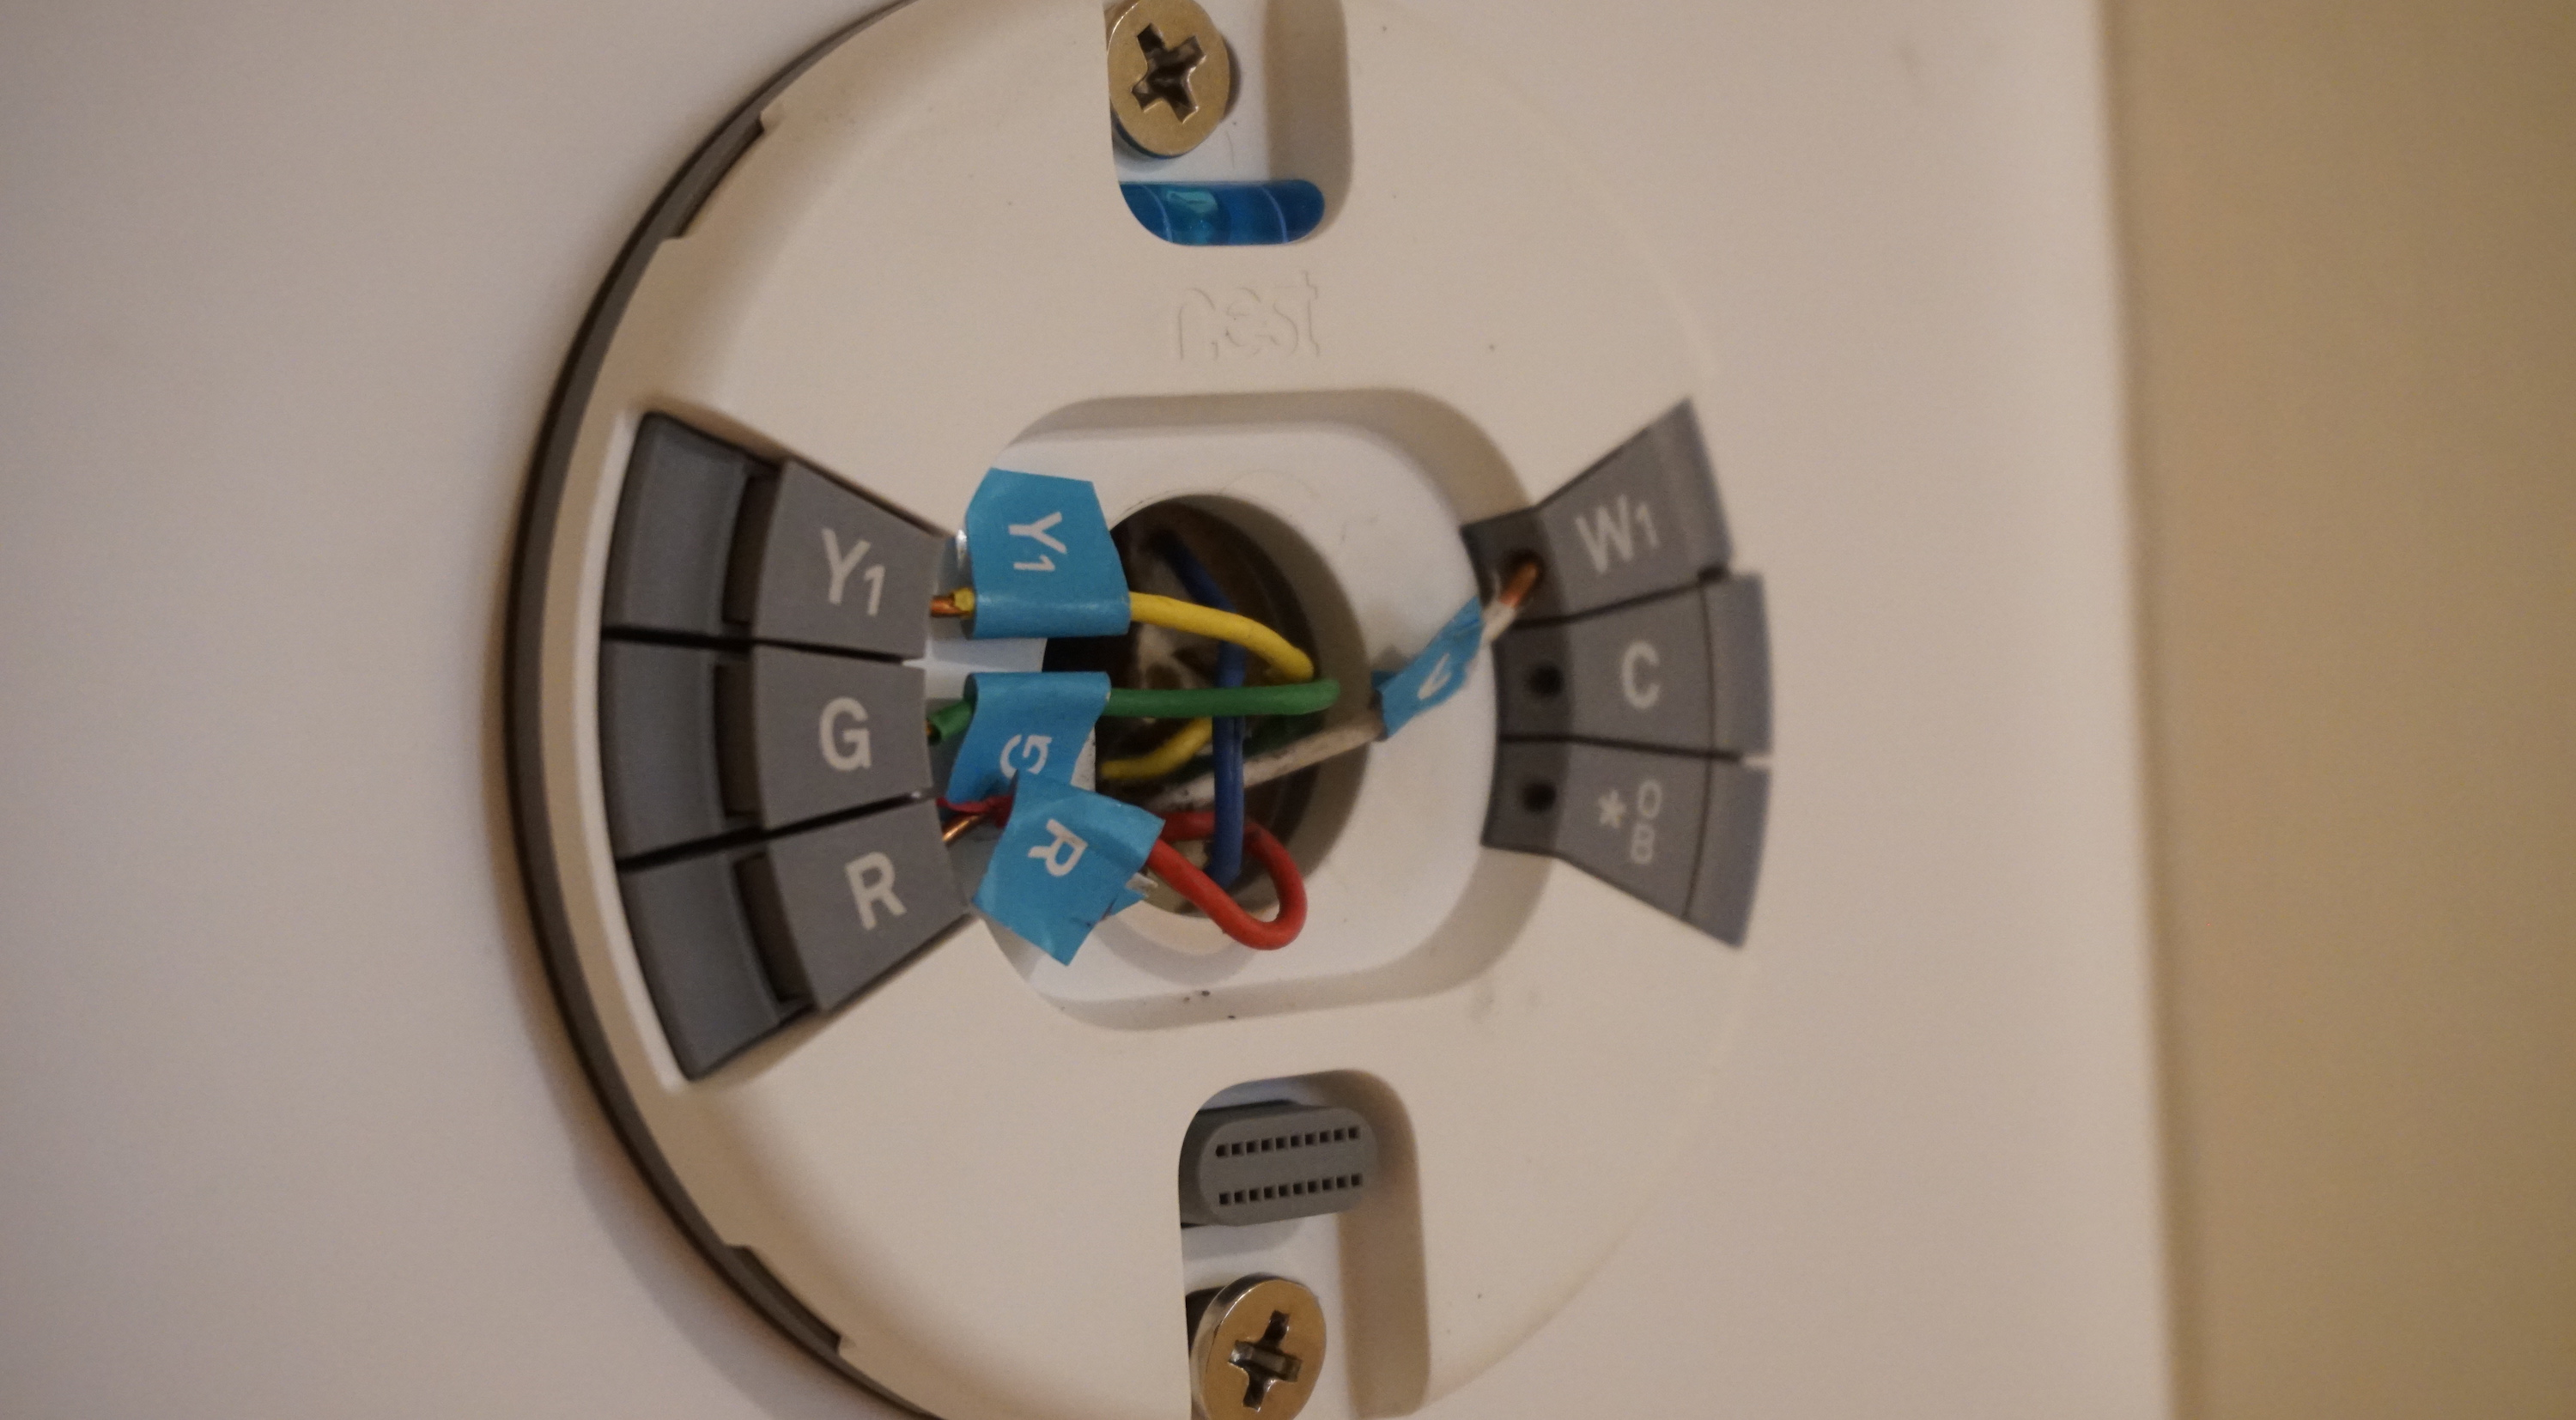 Thermostat E Wire | Nest Diary Set Up Impressions And Review Of The Nest Thermostat E